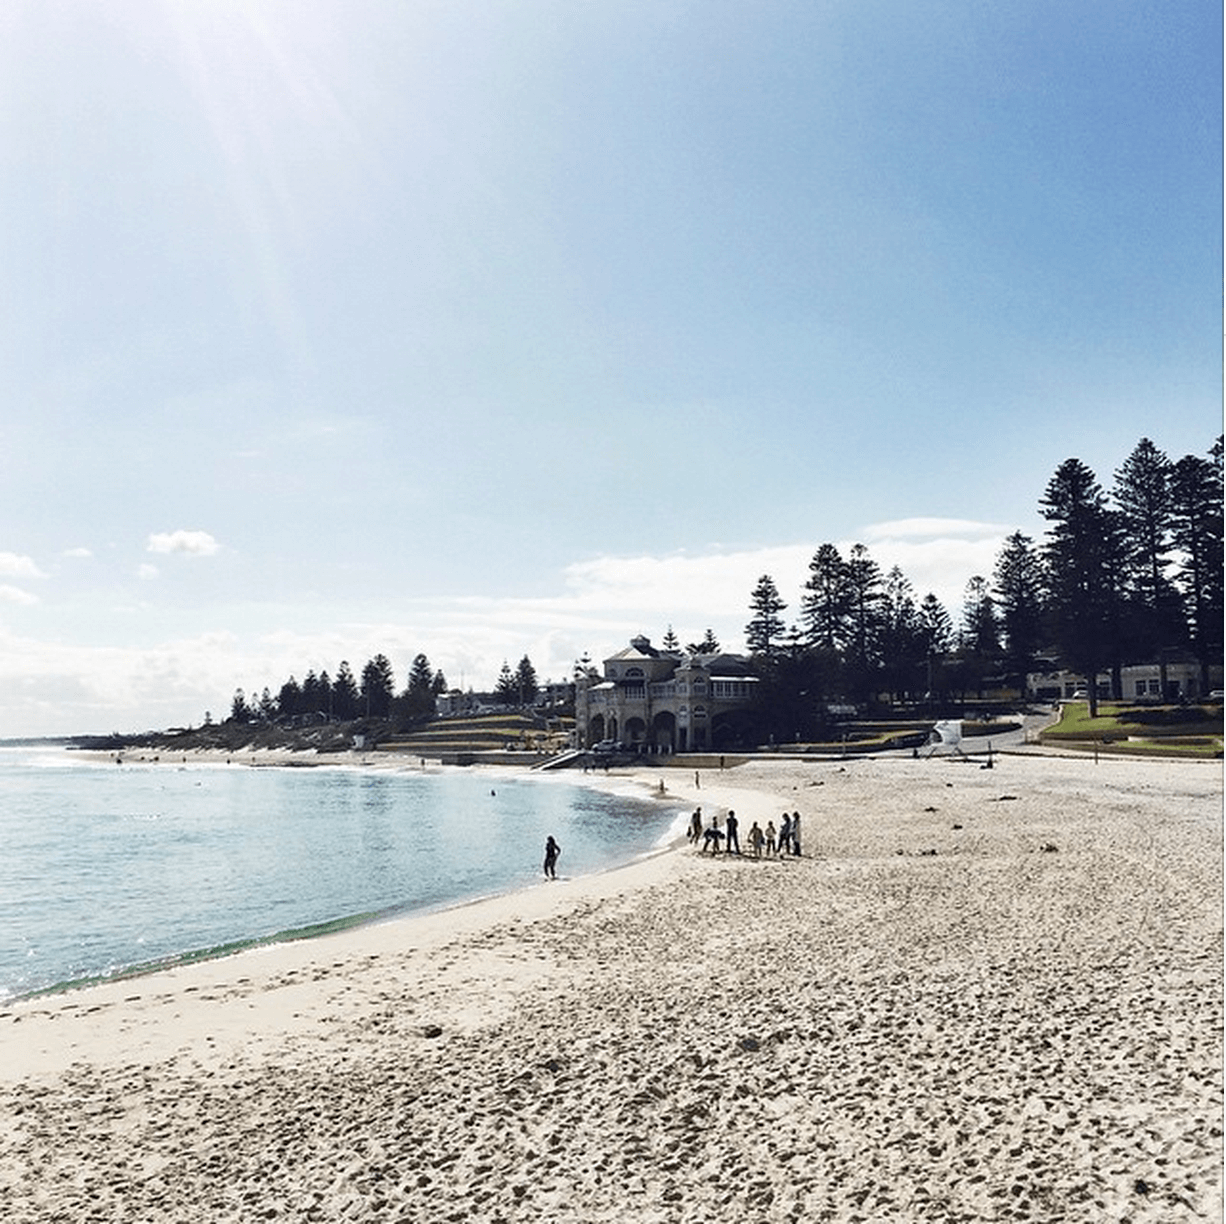 MY#WADAYPLEDGE IS TO EAT, DRINK AND LIVE LOCAL. WHAT'S YOUR PLEDGE THIS LONG WEEKEND?  Location: Cottesloe Beach, Perth